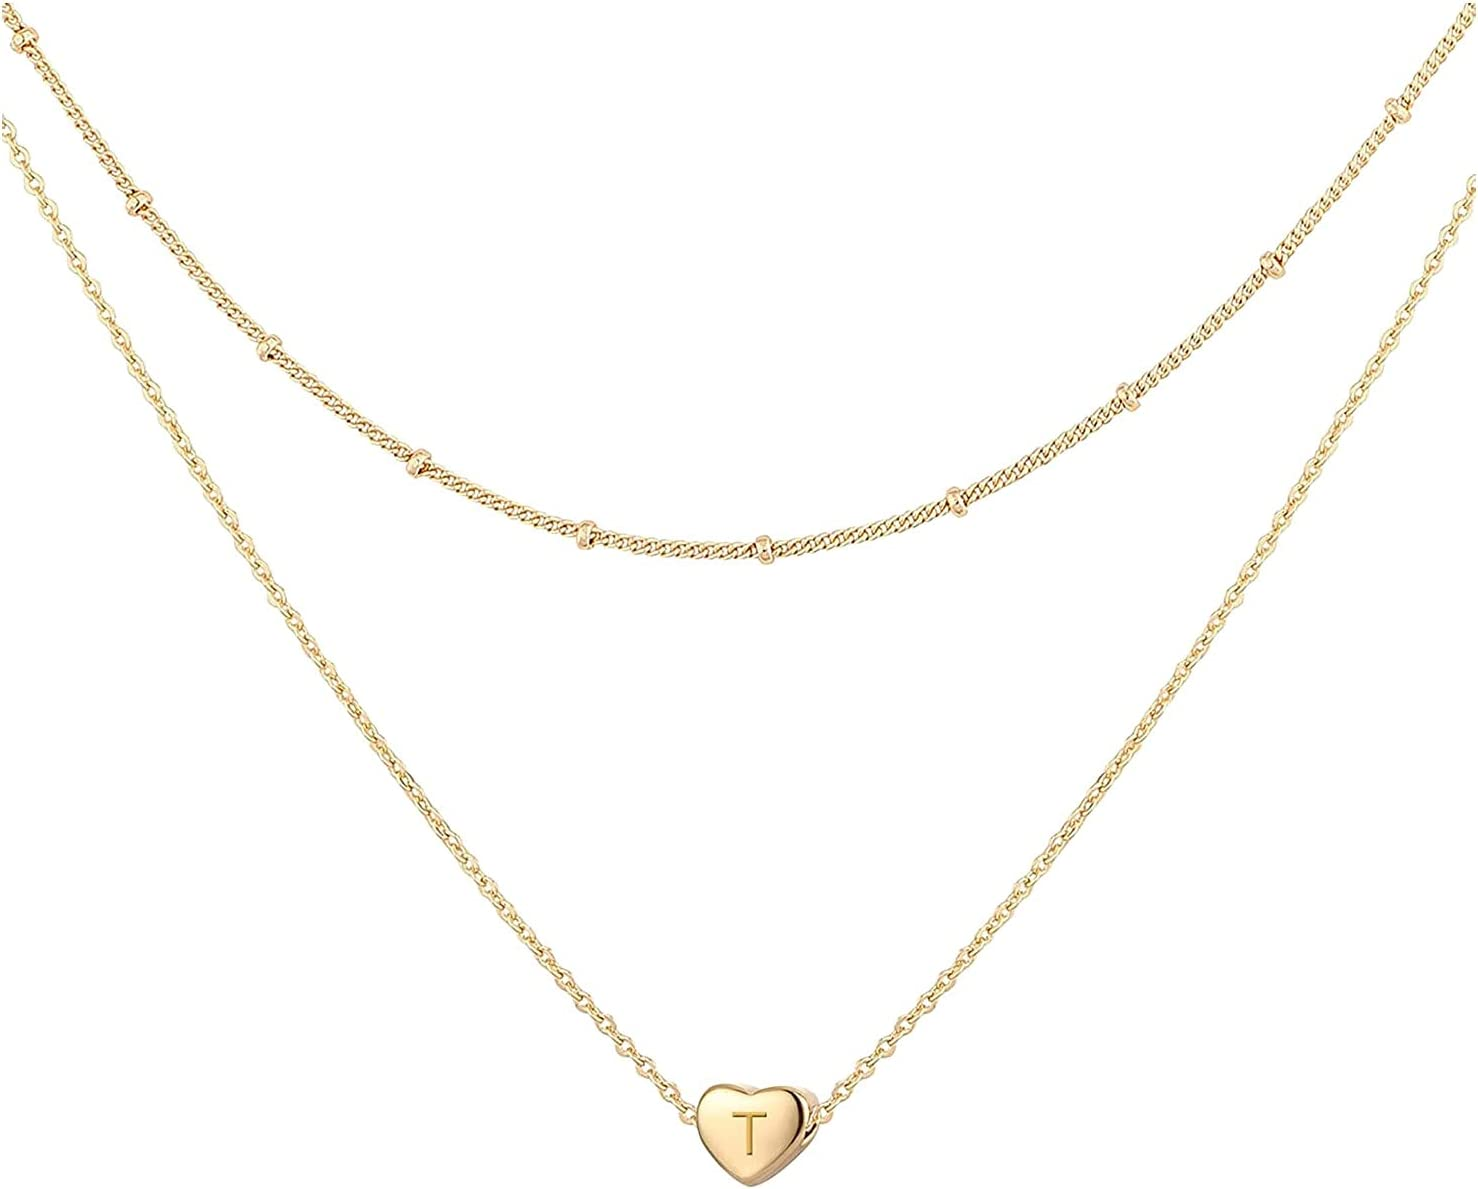 Mul-king Fashion Initials Layered Necklaces for Women, Heart Engraved Alphabet Necklace Personalized Tiny Letter Name Necklace Love Jewelry Gift for Women Girls (T)